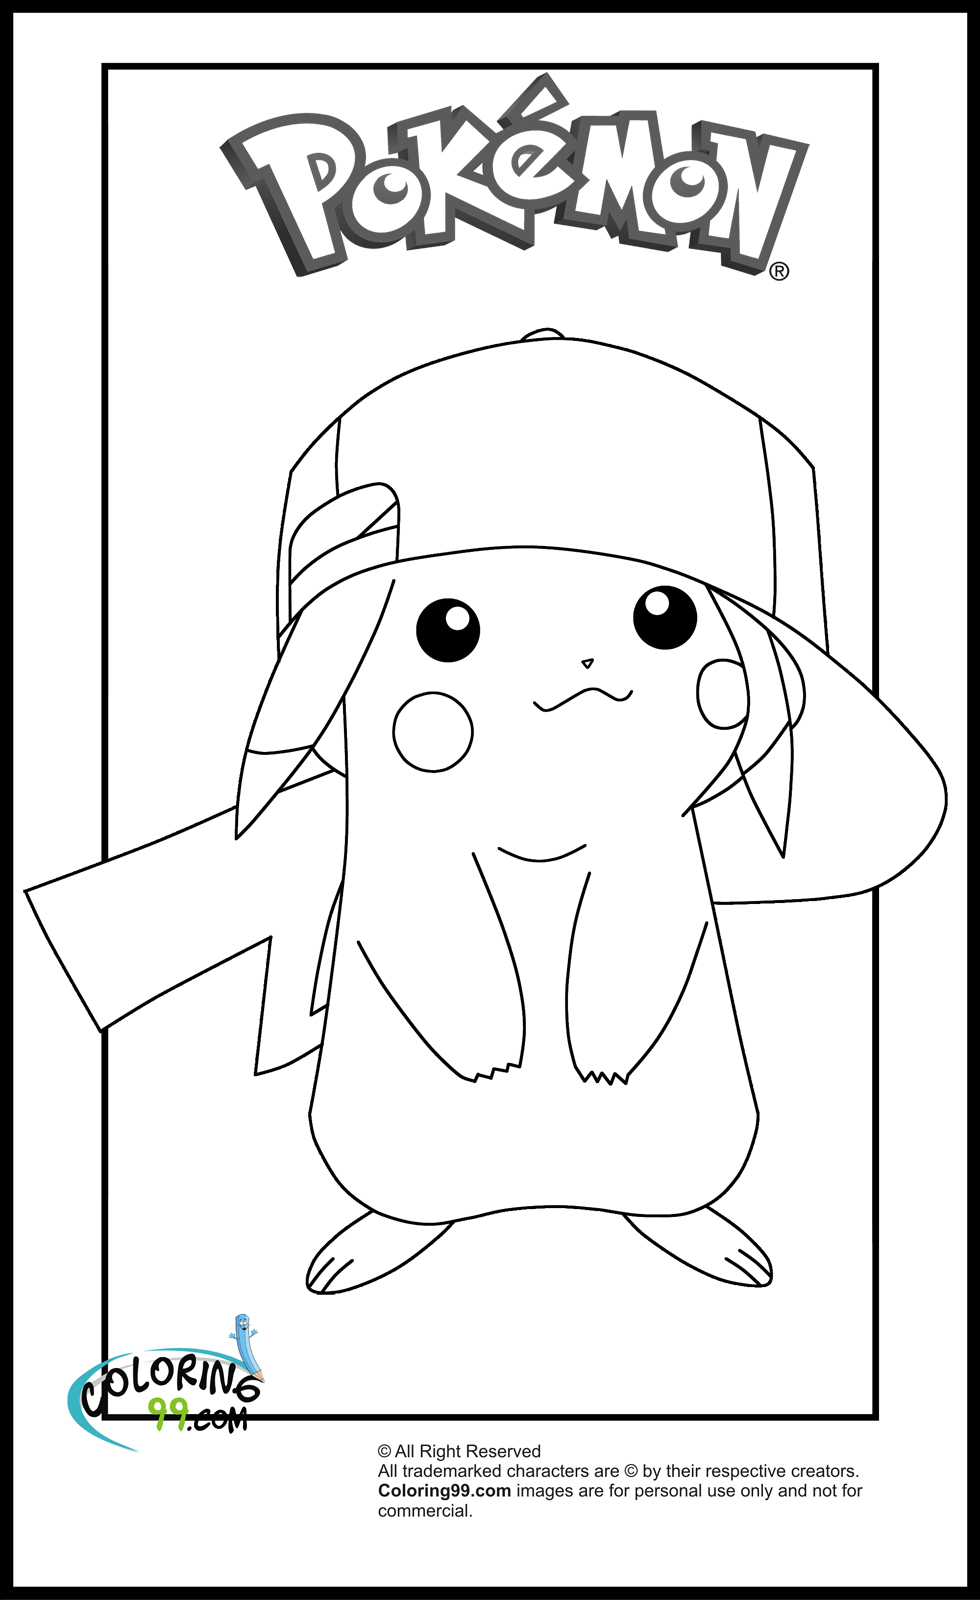 Pikachu coloring pages team colors for Pikachu coloring page